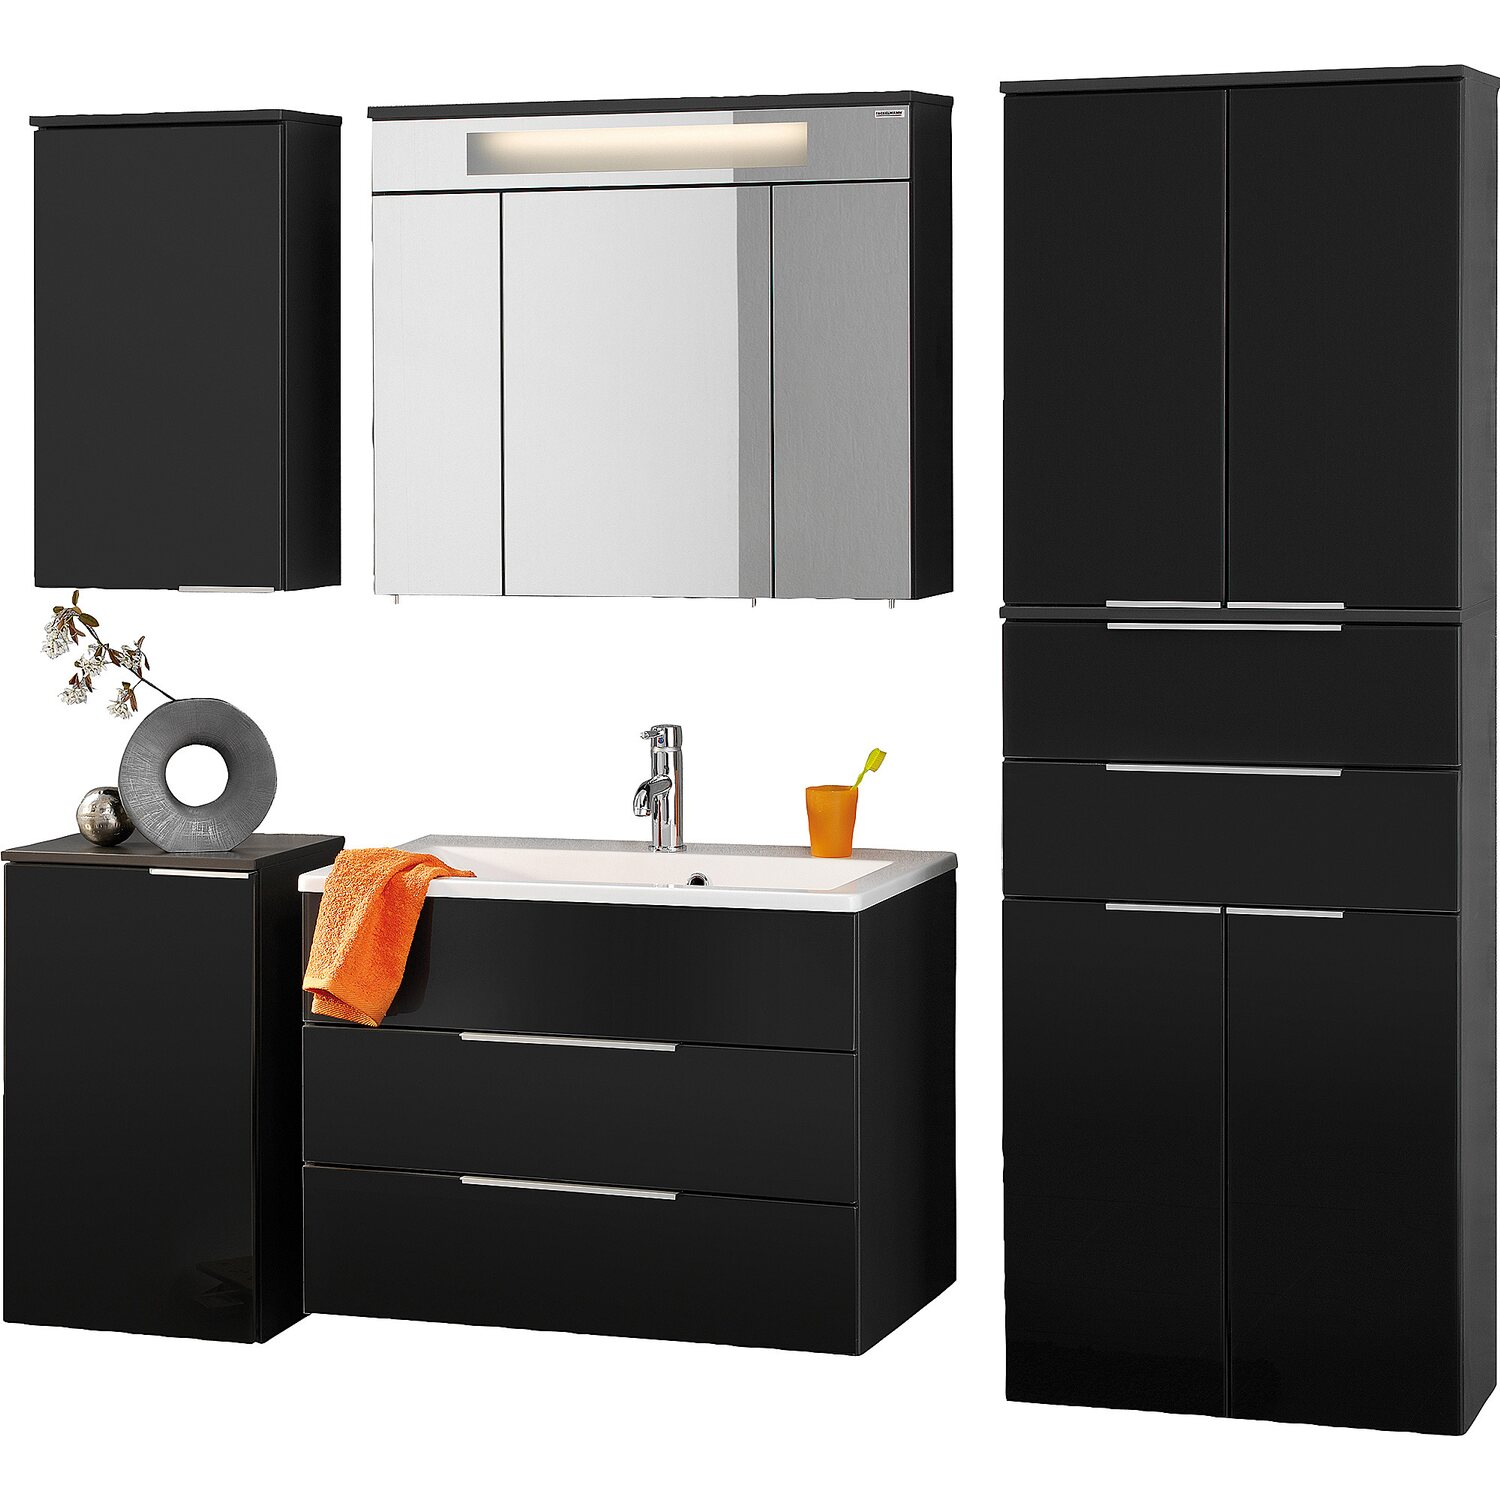 fackelmann badm bel set eek a kara anthrazit 6 teilig kaufen bei obi. Black Bedroom Furniture Sets. Home Design Ideas